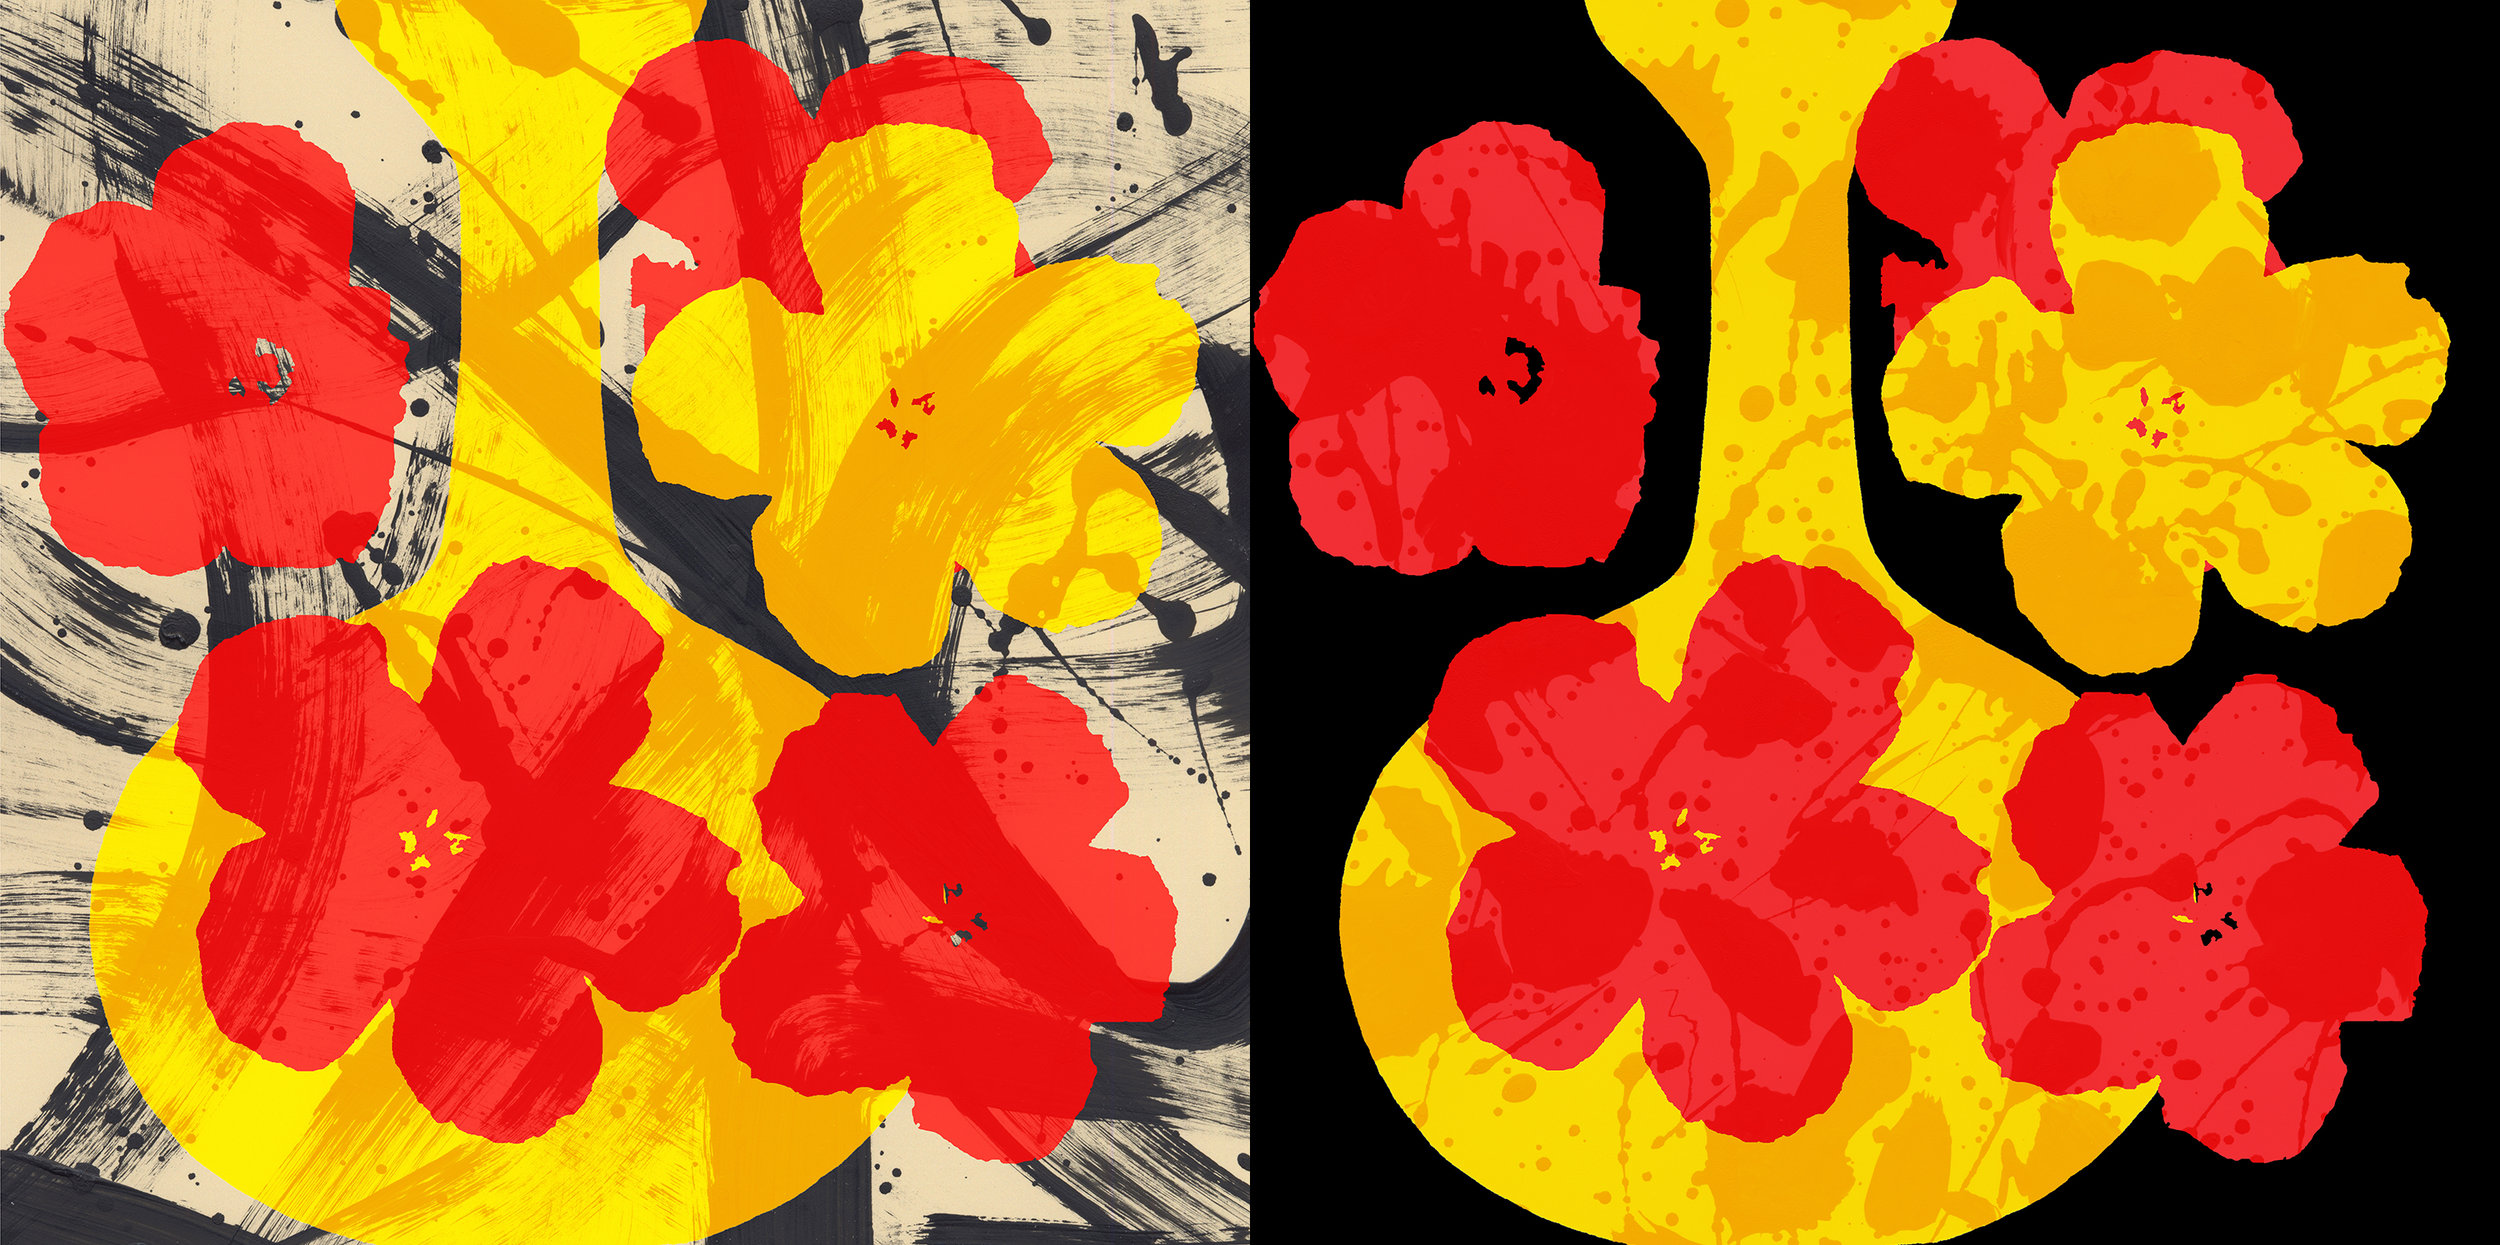 A vase with flowers 1 and 2.jpg